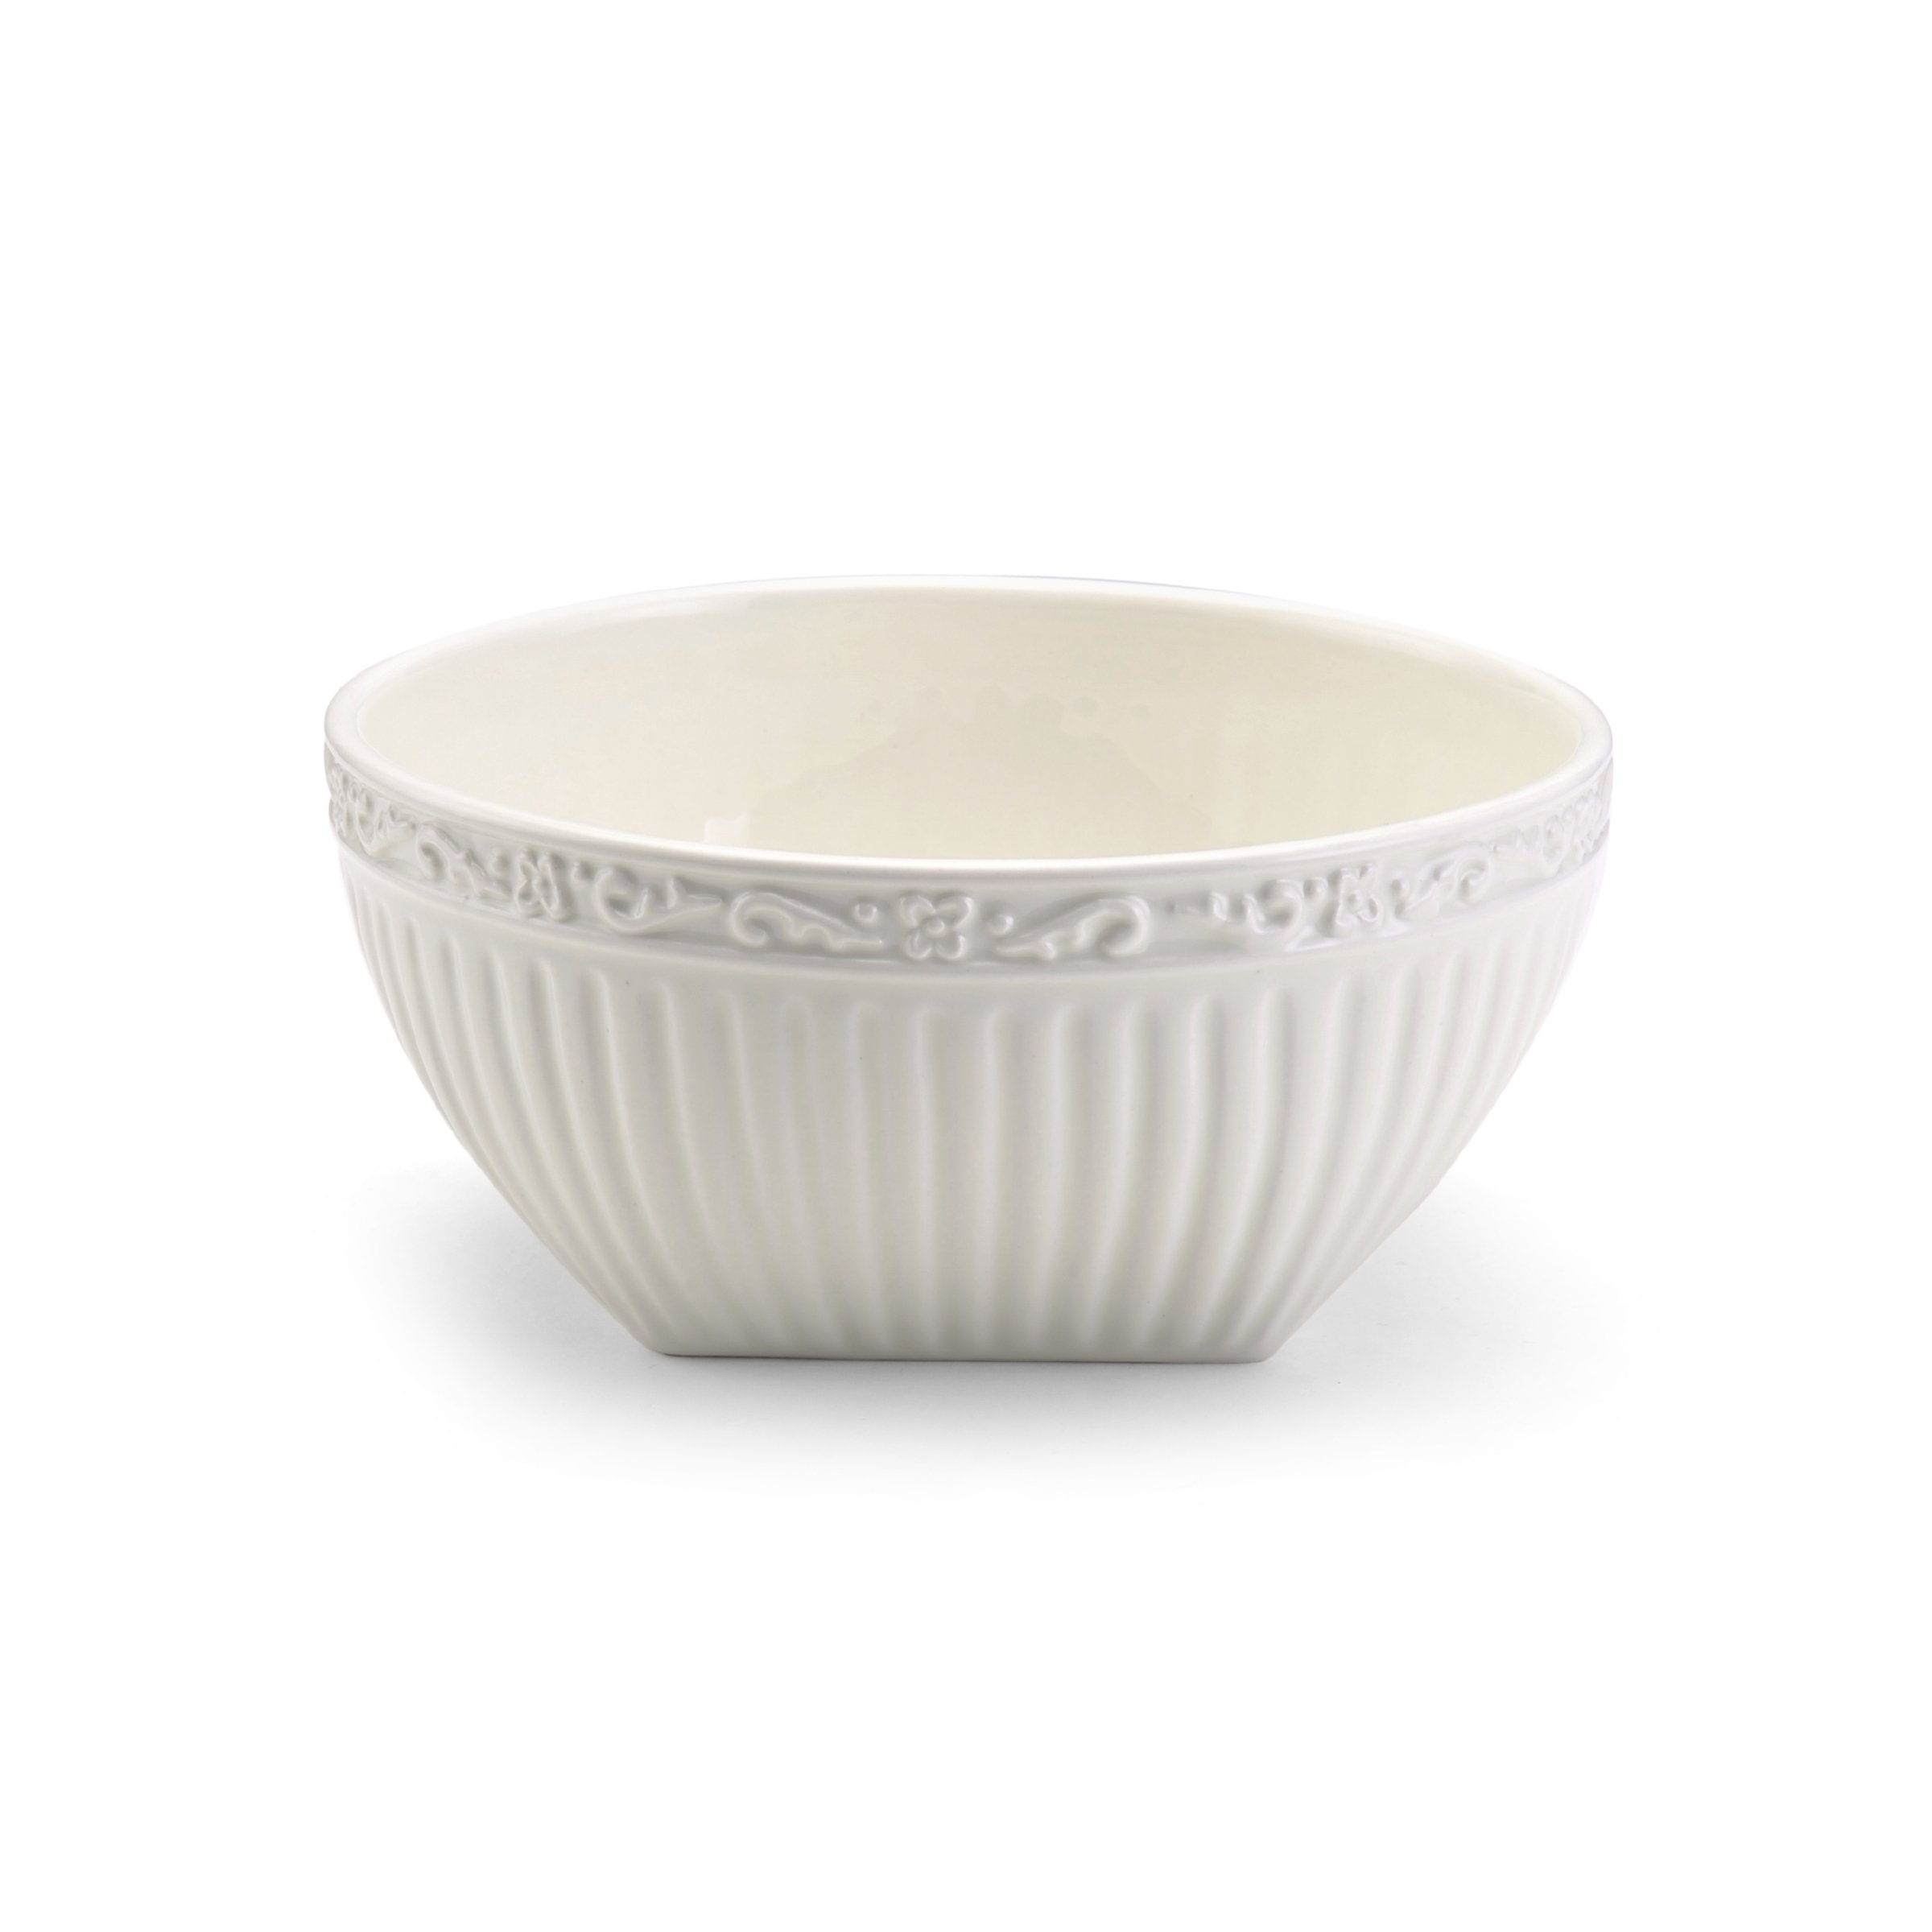 Mikasa Italian Countryside Square Cereal Bowl, 6.25-Inch